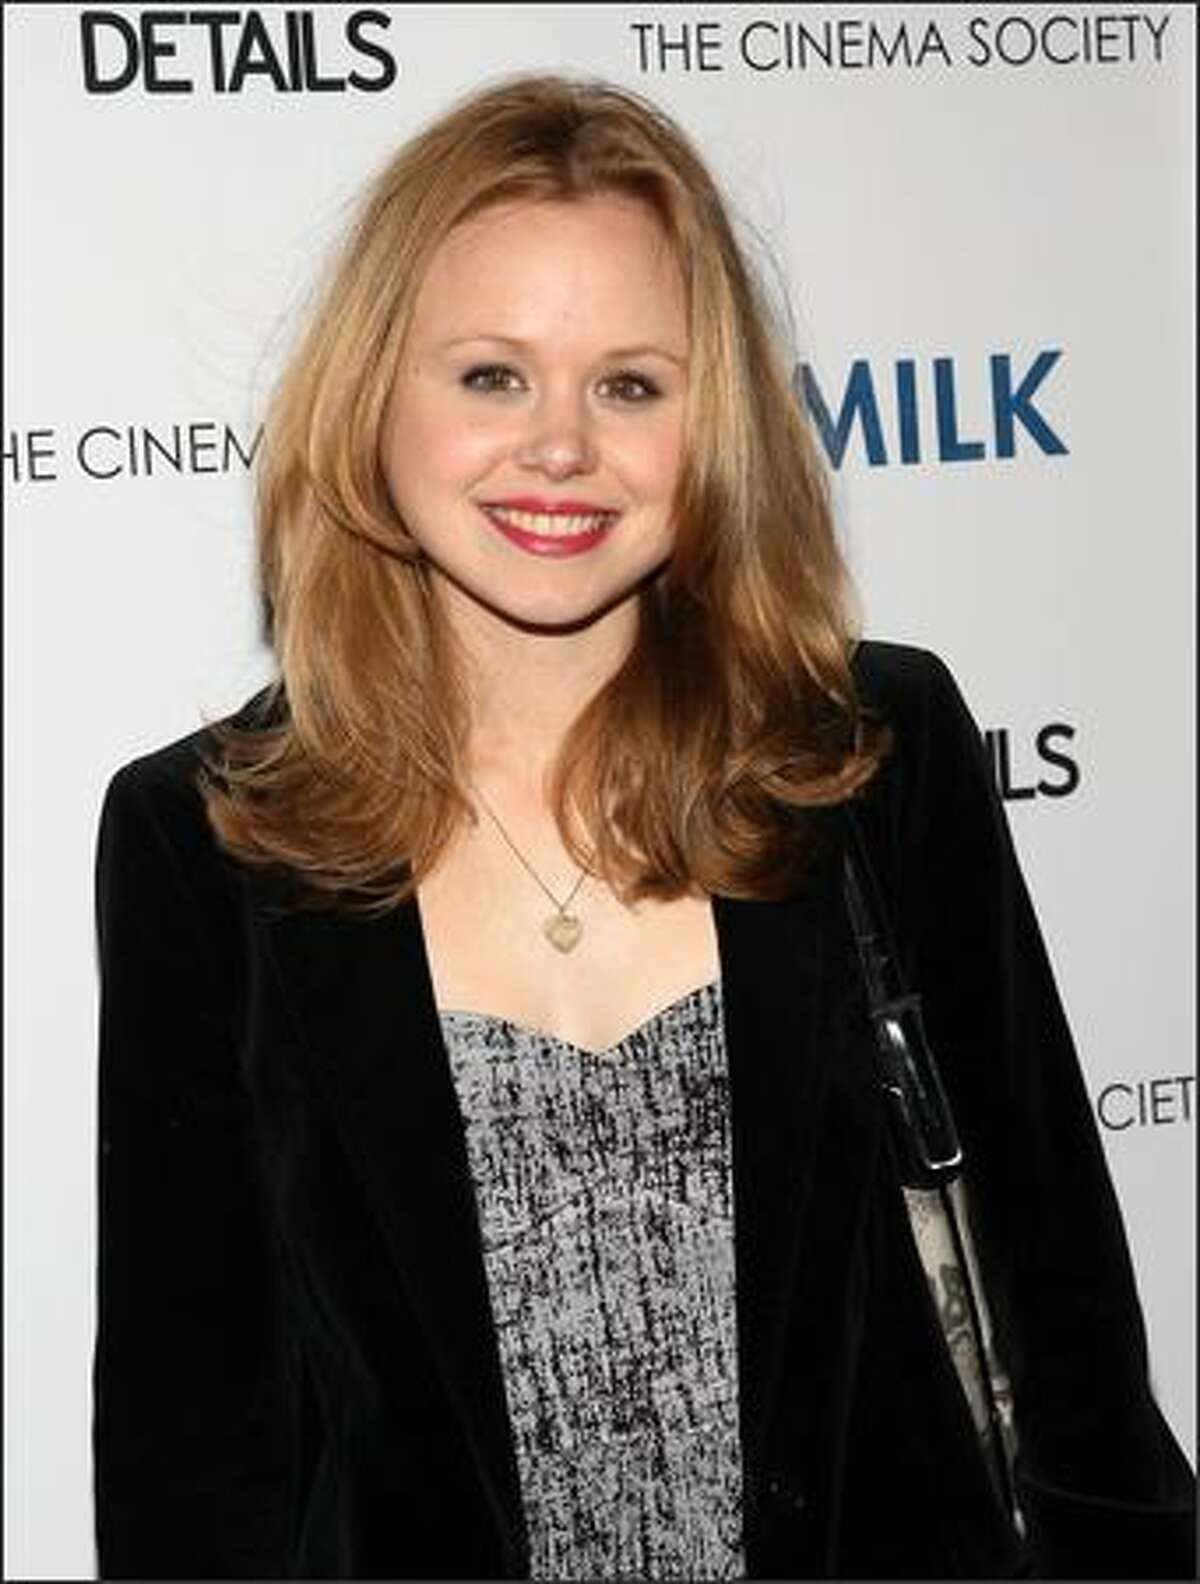 Actress Alison Pill attends a special screening of